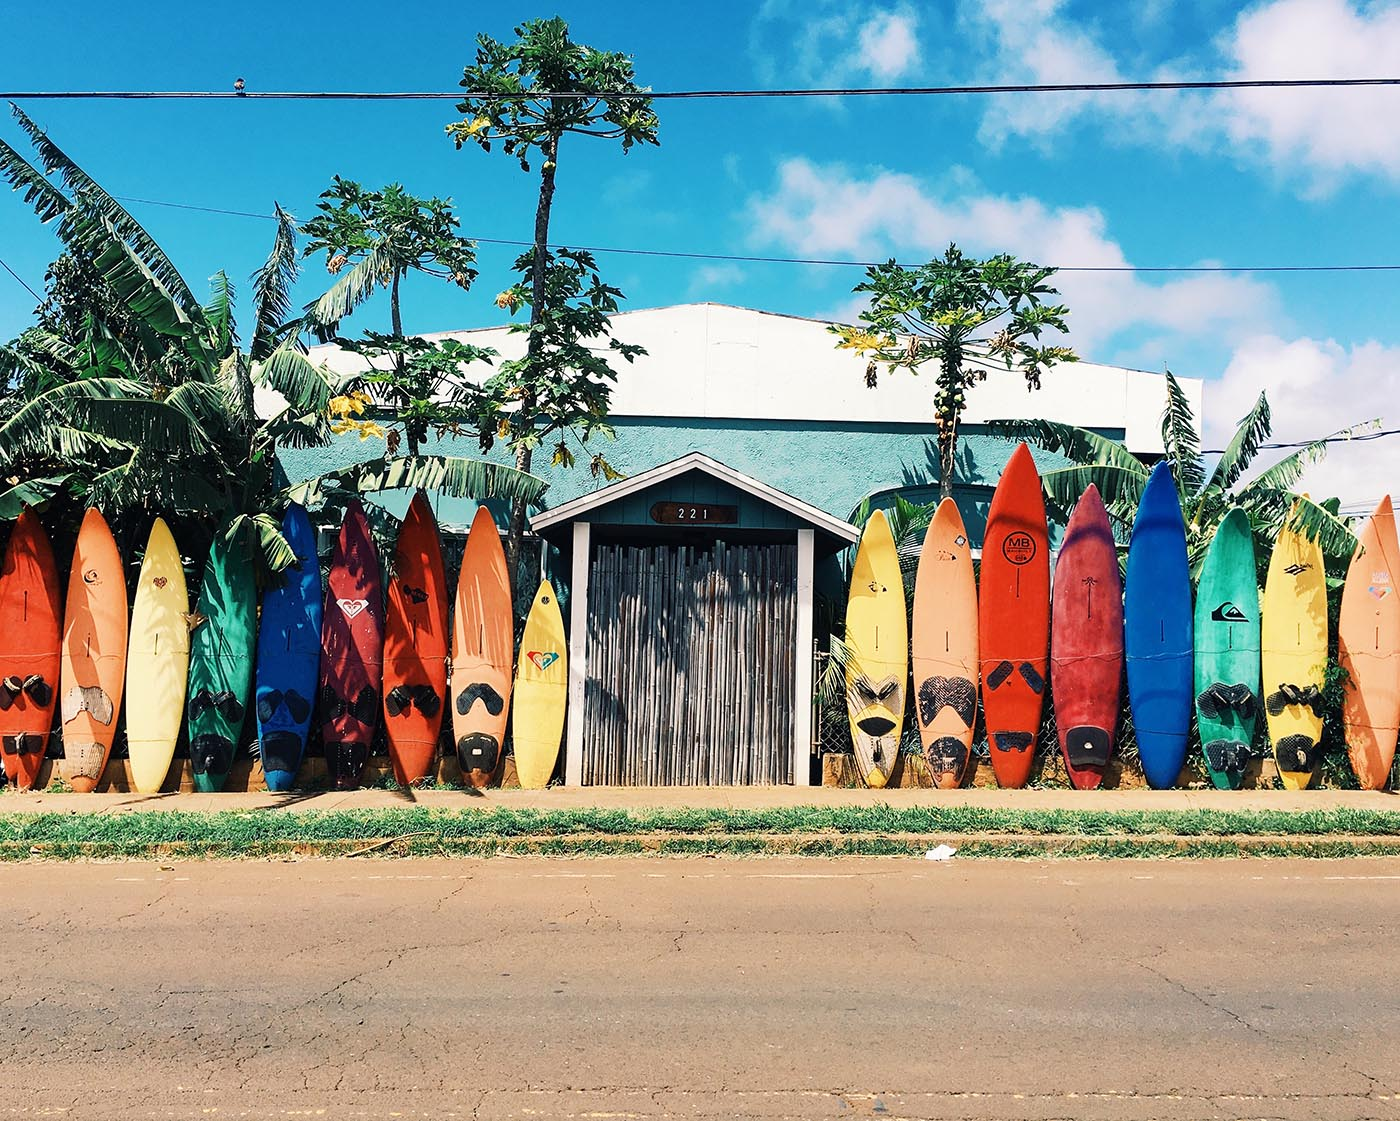 10 Types of Hostels You Might Stay at When Traveling - The Beach Hostel